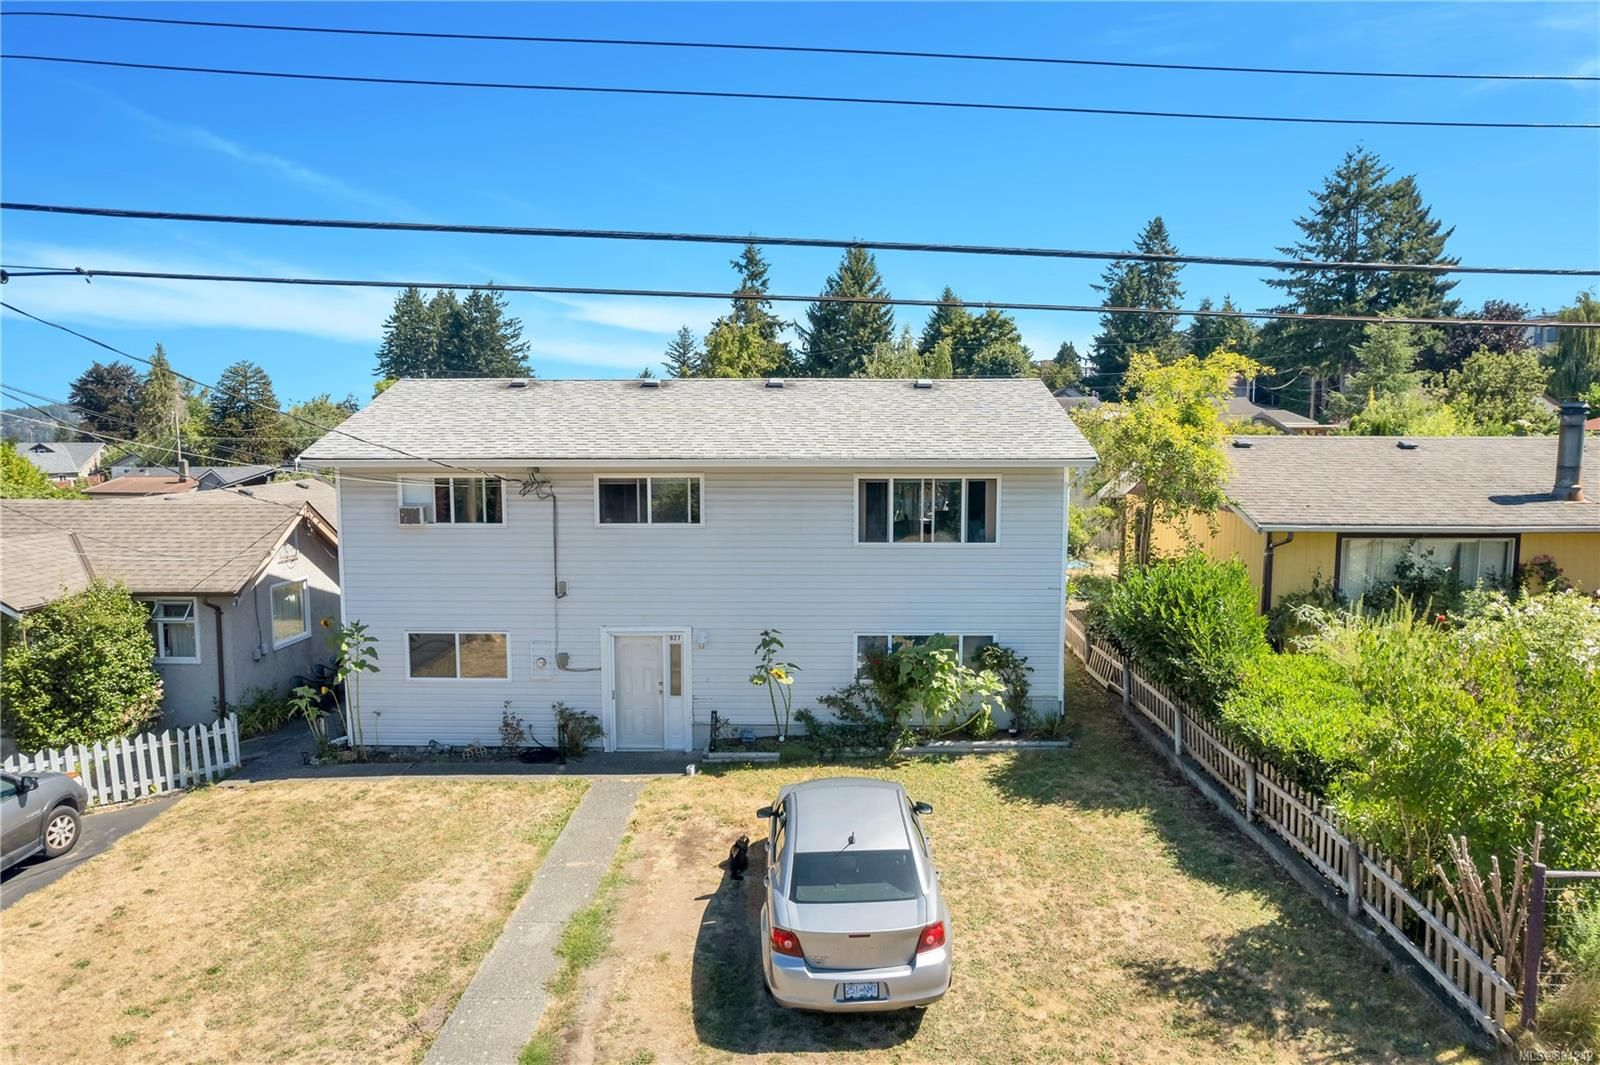 Main Photo: 927 GREENWOOD St in : CR Campbell River Central House for sale (Campbell River)  : MLS®# 884242